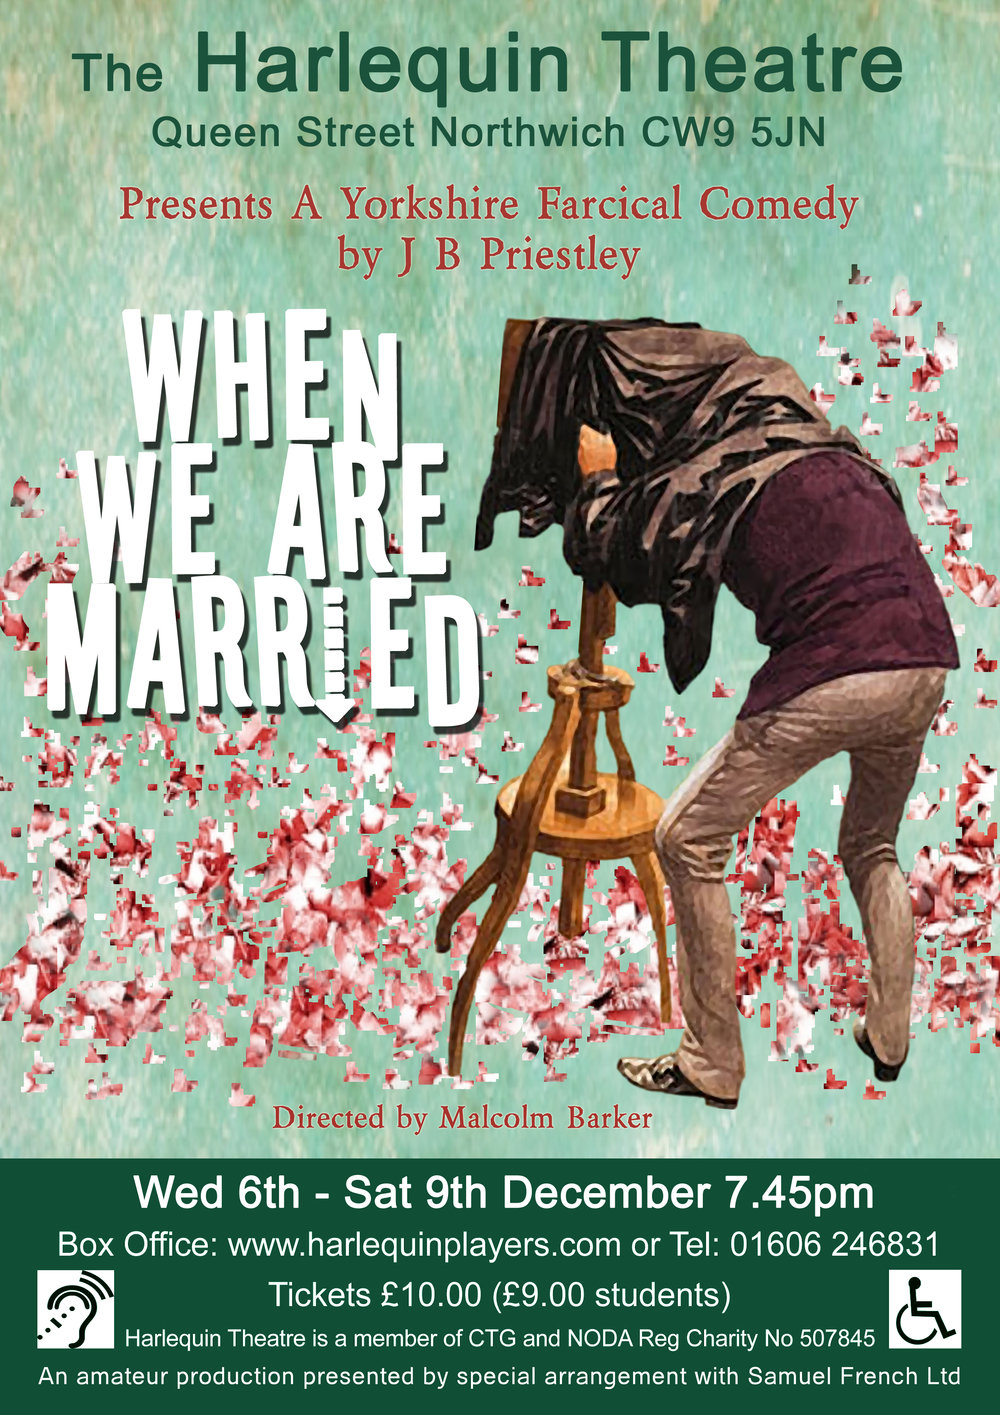 When We Are Married - by JB Priestley6th - 9th DecemberWhen We Are Married is a play by the English dramatist, J. B. Priestley and he described it as a Farcical Yorkshire Comedy. It was first performed at the St. Martin's Theatre, London on 11 October 1938, and transferred to the larger Prince's Theatre in March 1939. It has since been performed throughout the world by both amateur and professional companies, the last outing in the West End of London being in 2011 at the Garrick Theatre. It is widely regarded as Priestley's finest work in comedy theatre.The story is set in Edwardian England and follows three middle class couples in an age when public opinion must ride above all considerations. The three couples, old friends and all married on the same day in the same chapel are celebrating their silver anniversary when they discover from the chapel organist they were threatening with dismissal, that they are not legally married. Each couple initially reacts with proper Victorian horror – what will the neighbours think? – and all three couples find themselves re-evaluating their marriages. Hovering closely over the proceedings is the Yorkshire Argus' alcohol-soaked photographer, keen to record the evening's events for posterity, and a wickedly destructive housekeeper who is hoping to use the couples' mortification to her own advantage. A evening of fun and hilarity is promised.CASTRuby Birtle - Ellie Hamer (Kindly Leave the Stage)           Fred Dyson - Brandon Chadwick (A Flea in Her Ear)Gerald Forbes - Jake Powell (A Flea in Her Ear)Lottie Grady - Lesley Silcock (It Runs in the Family)Joseph Helliwell - Dave Rogerson (Last Tango & Panto in Northwich)Maria Helliwell - Yvette Owen (Therese Raquin as director)Nancy Holme - Caz Guard (A Flea in Her Ear)Rev Mercer - Anthony Kitchen (A Flea in Her Ear)Mrs Northrop - Julia Edwards (A Flea in Her Ear)Henry Ormanroyd - John Dodd (from Kingsley Players – HP debut)Albert Parker - Neil Silcock (The Noble Spaniard)Annie Parker - Fran Hamer (Road)Herbert Soppitt - George Williams (A Flea in Her Ear)Clara Soppitt - Tina Wyatt (Last Tango & Panto in Northwich)DIRECTORMalcolm Barker